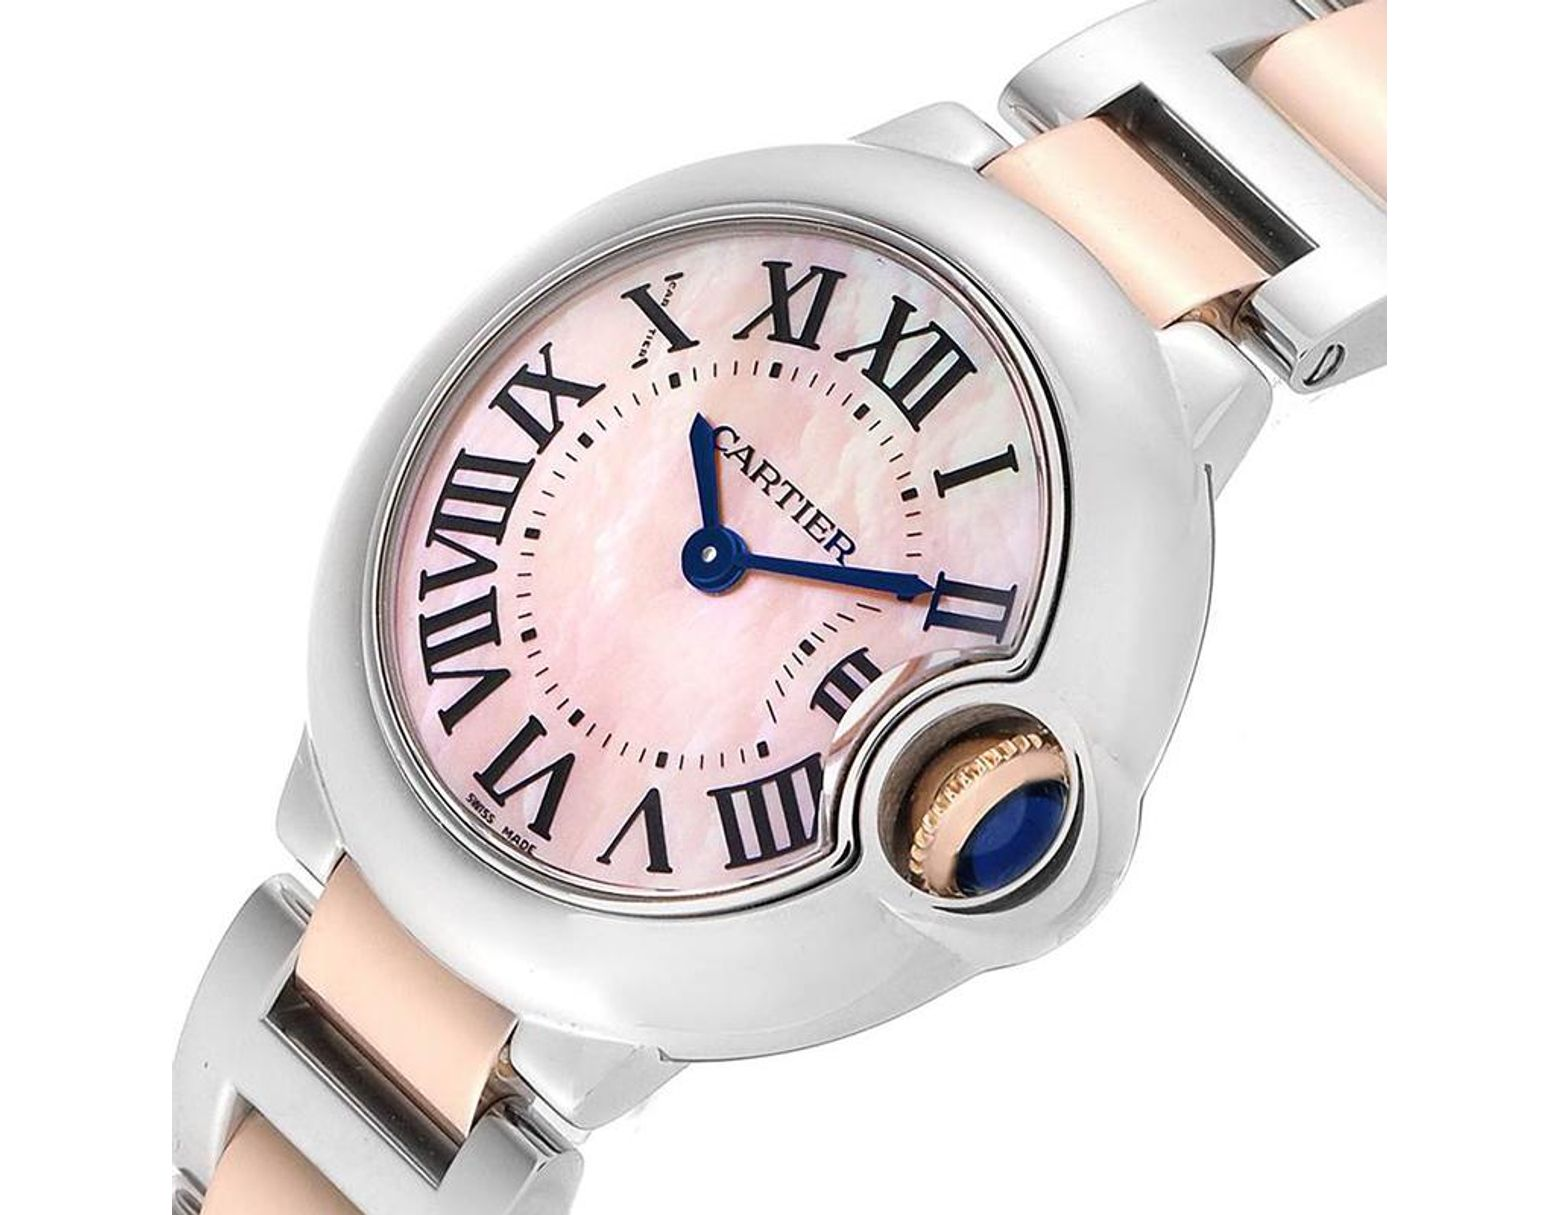 competitive price eb2c7 ae7e2 Cartier Mop Stainless Steel And 18k Rose Gold Ballon Bleu ...